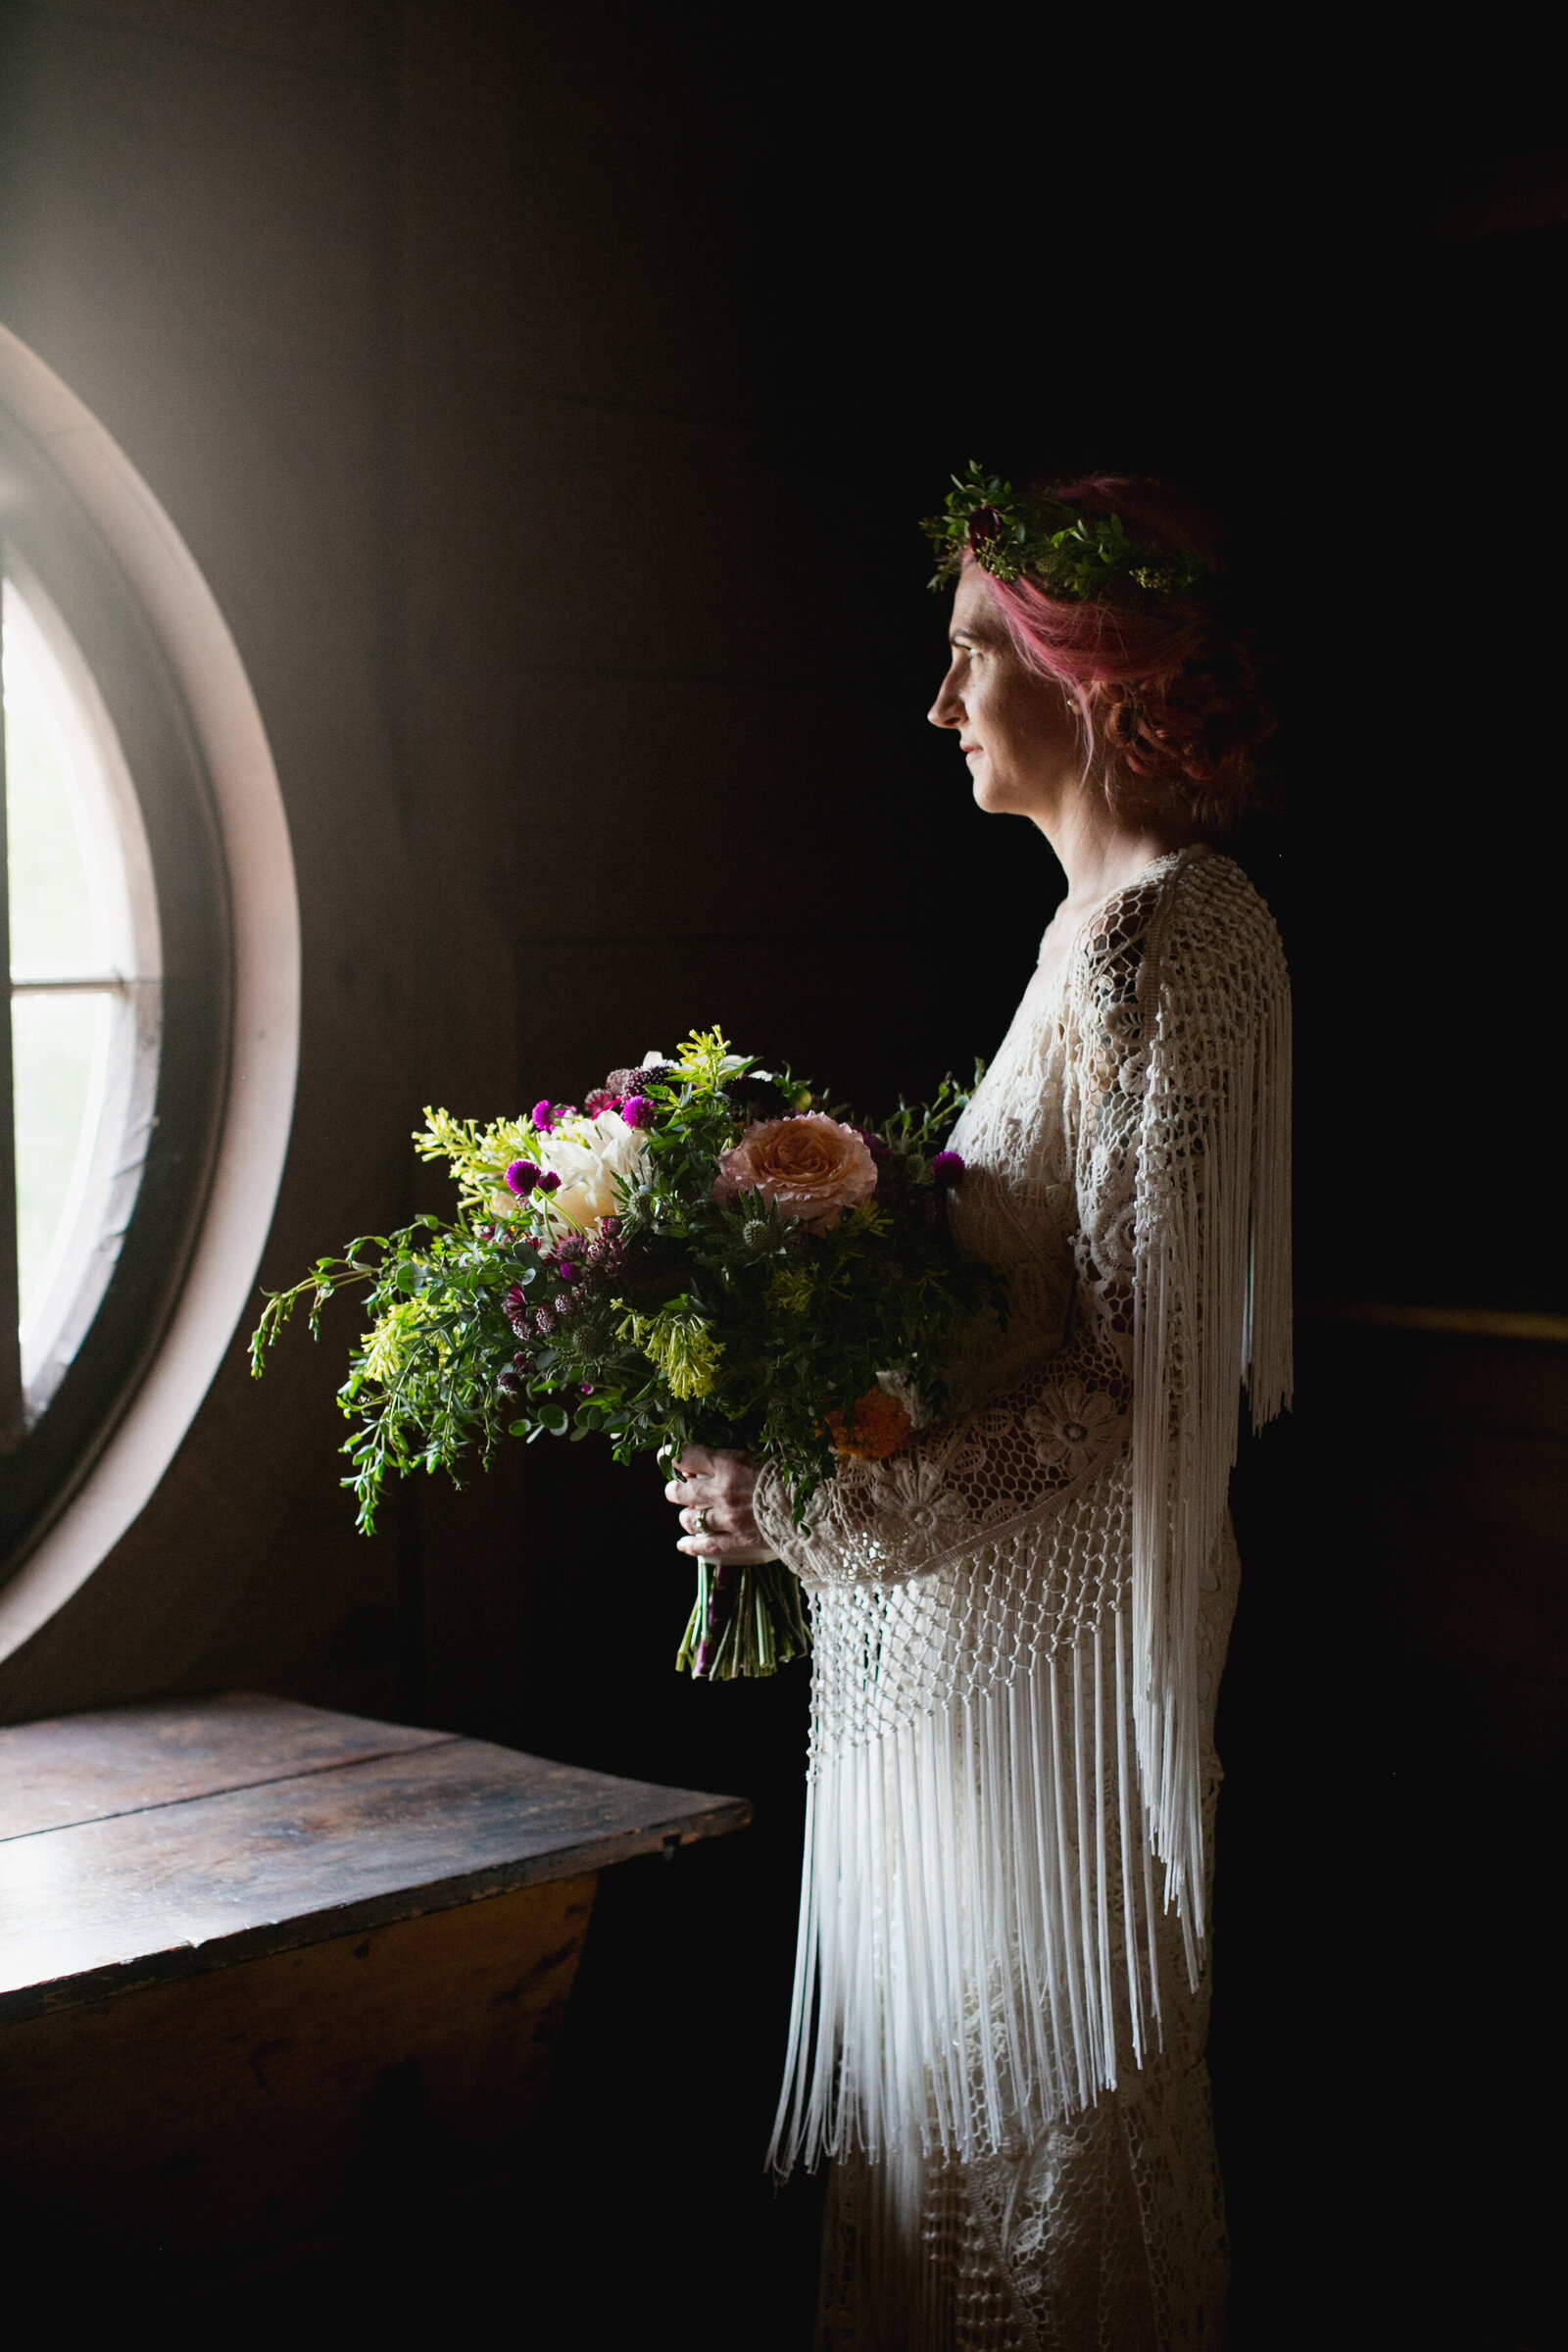 bride with fringe dress at window light